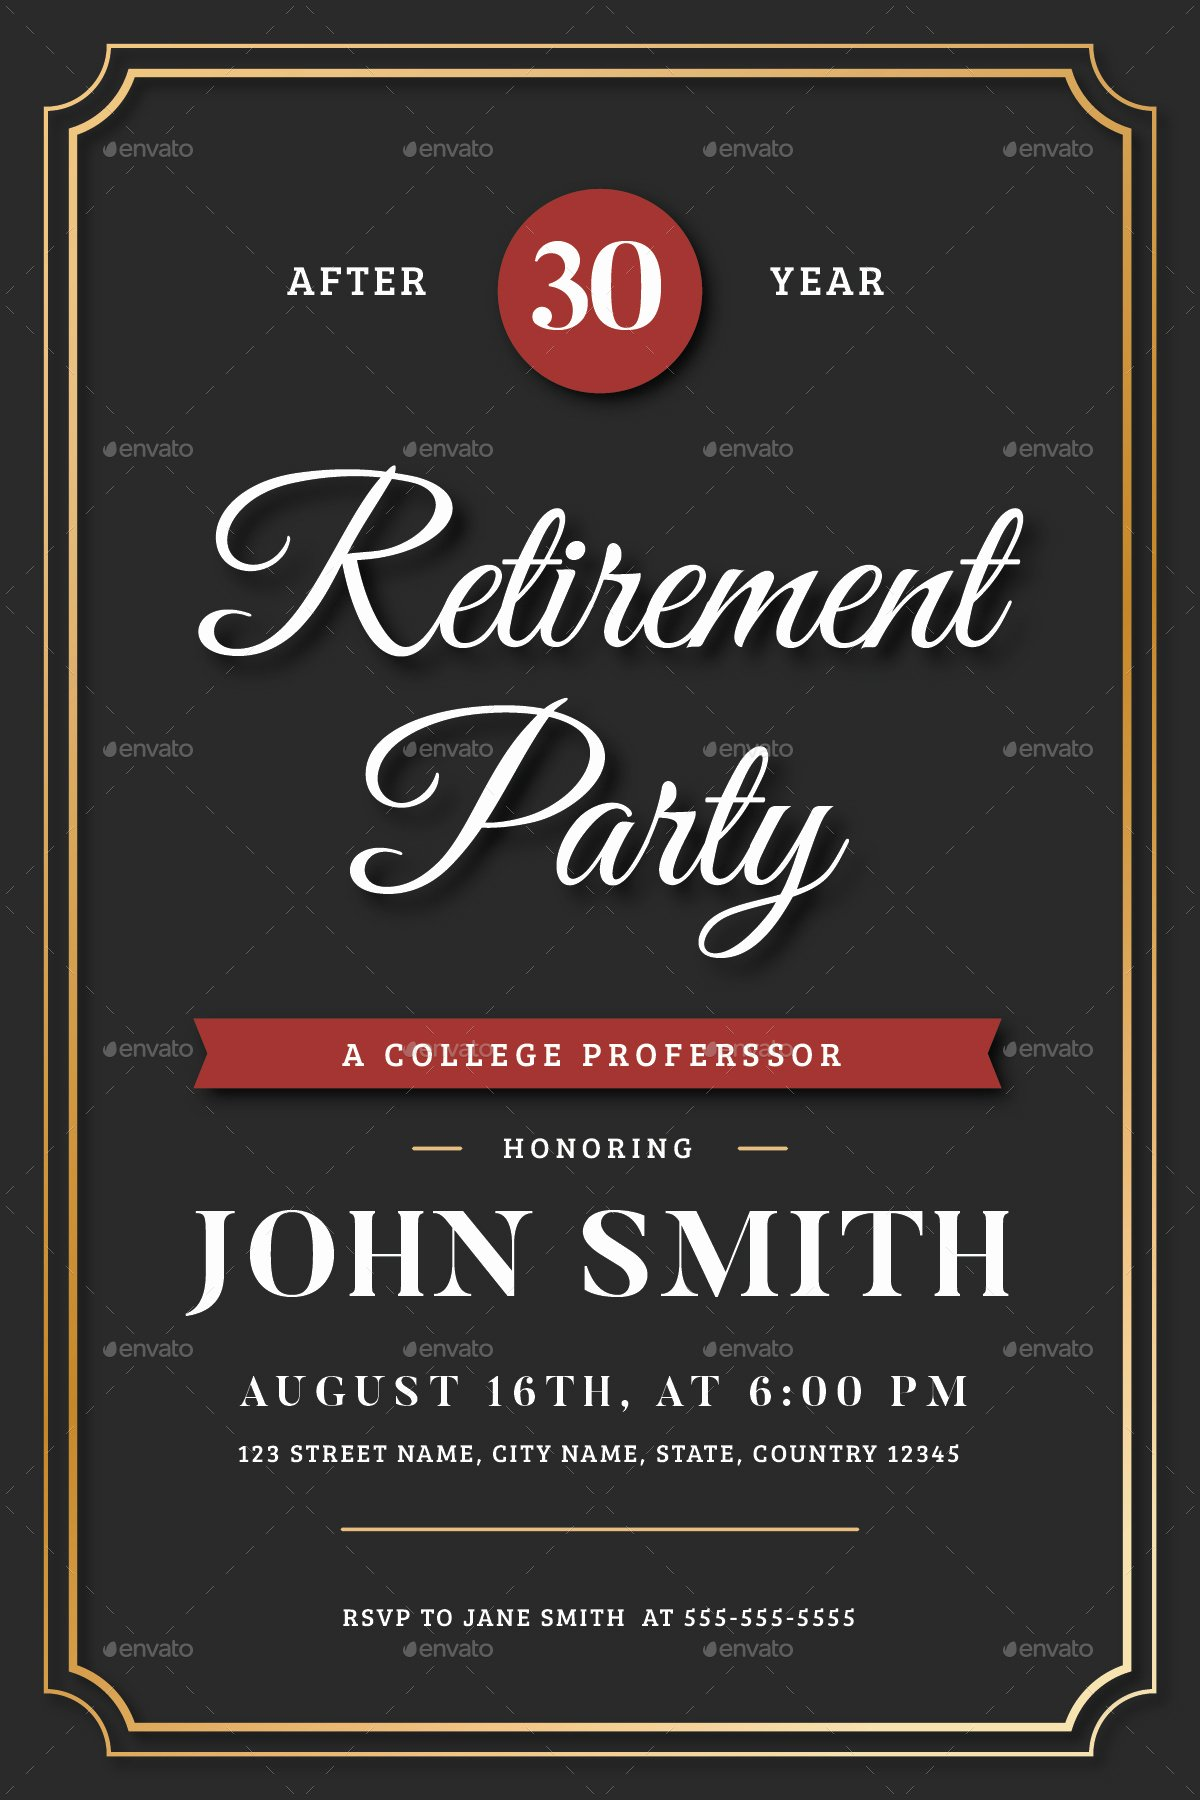 Retirement Flyer Free Template Best Of Retirement Invitation Flyer Templates by Vynetta